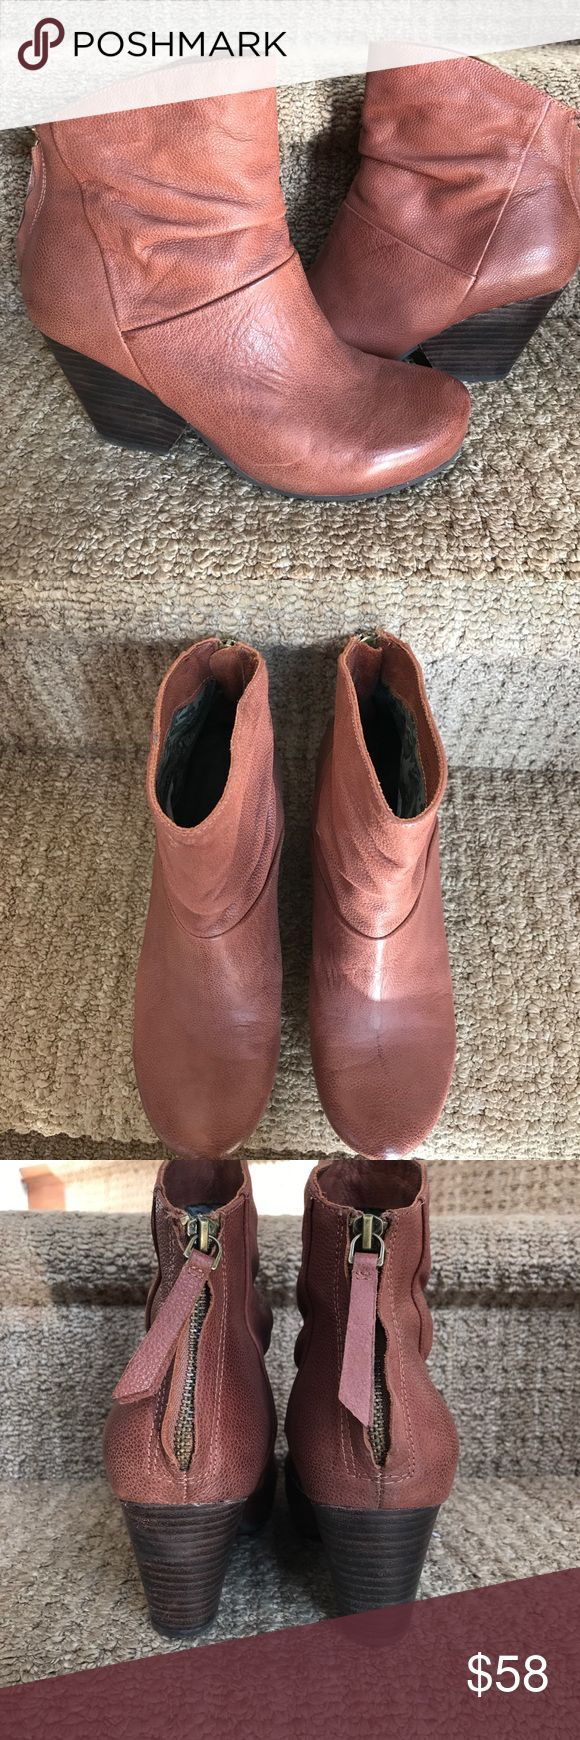 """OTBT """"Branford"""" short ankle boots OTBT """"Branford"""" booties   In really great condition. 3"""" wooden heel. Non skid sole. Worn maybe 3x OTBT Shoes Ankle Boots & Booties"""